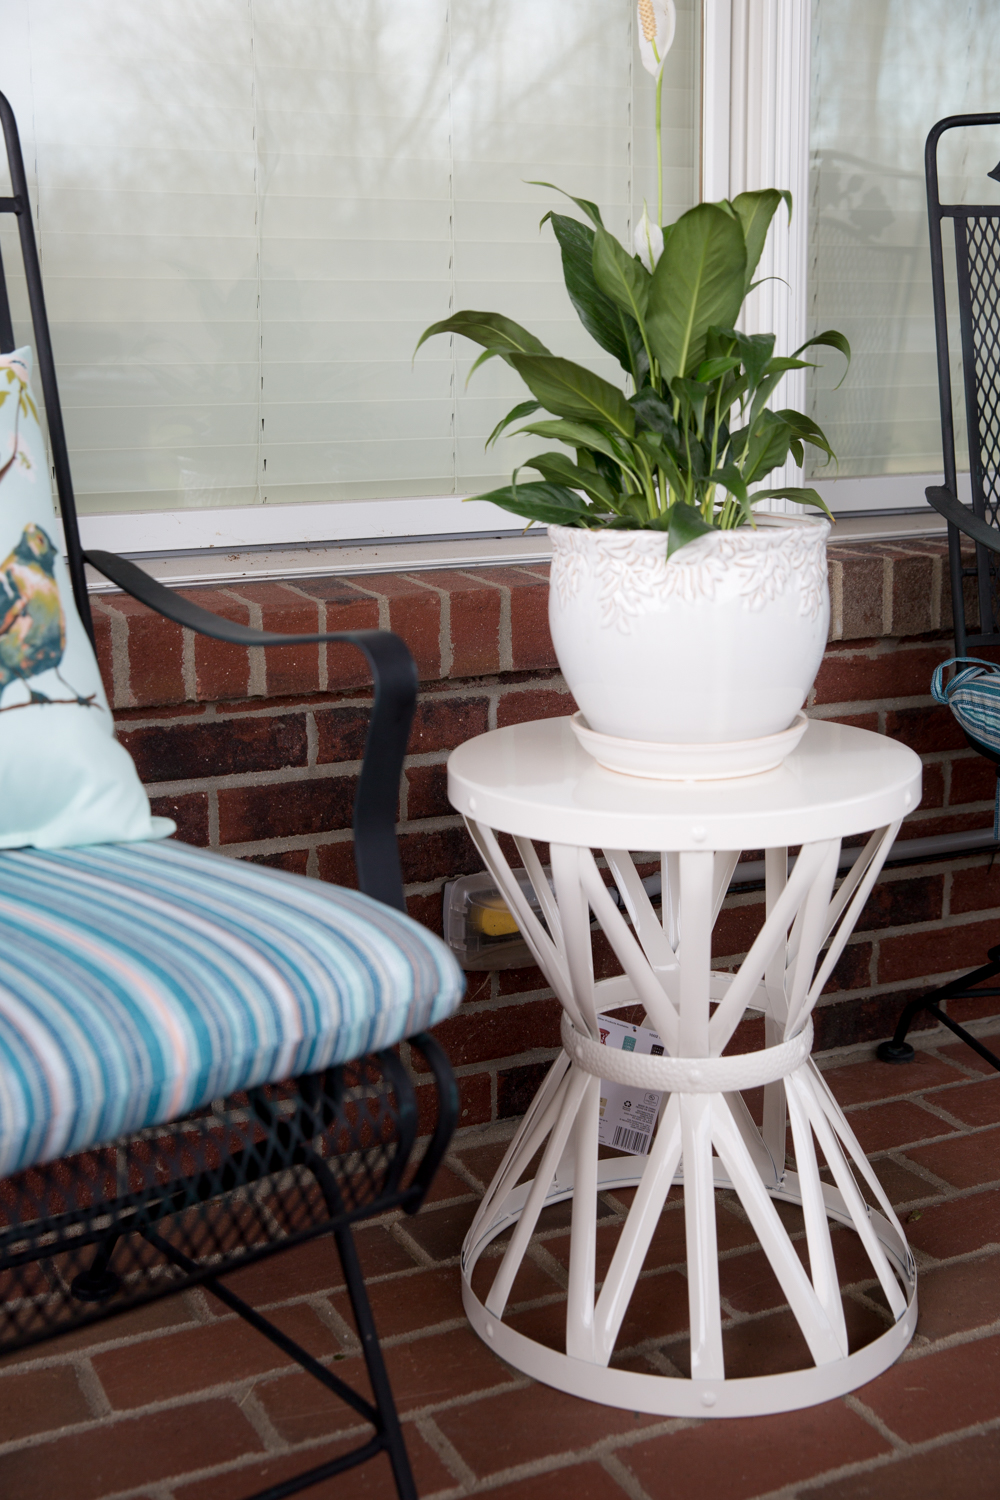 Adding Spring Decor with The Home Depot